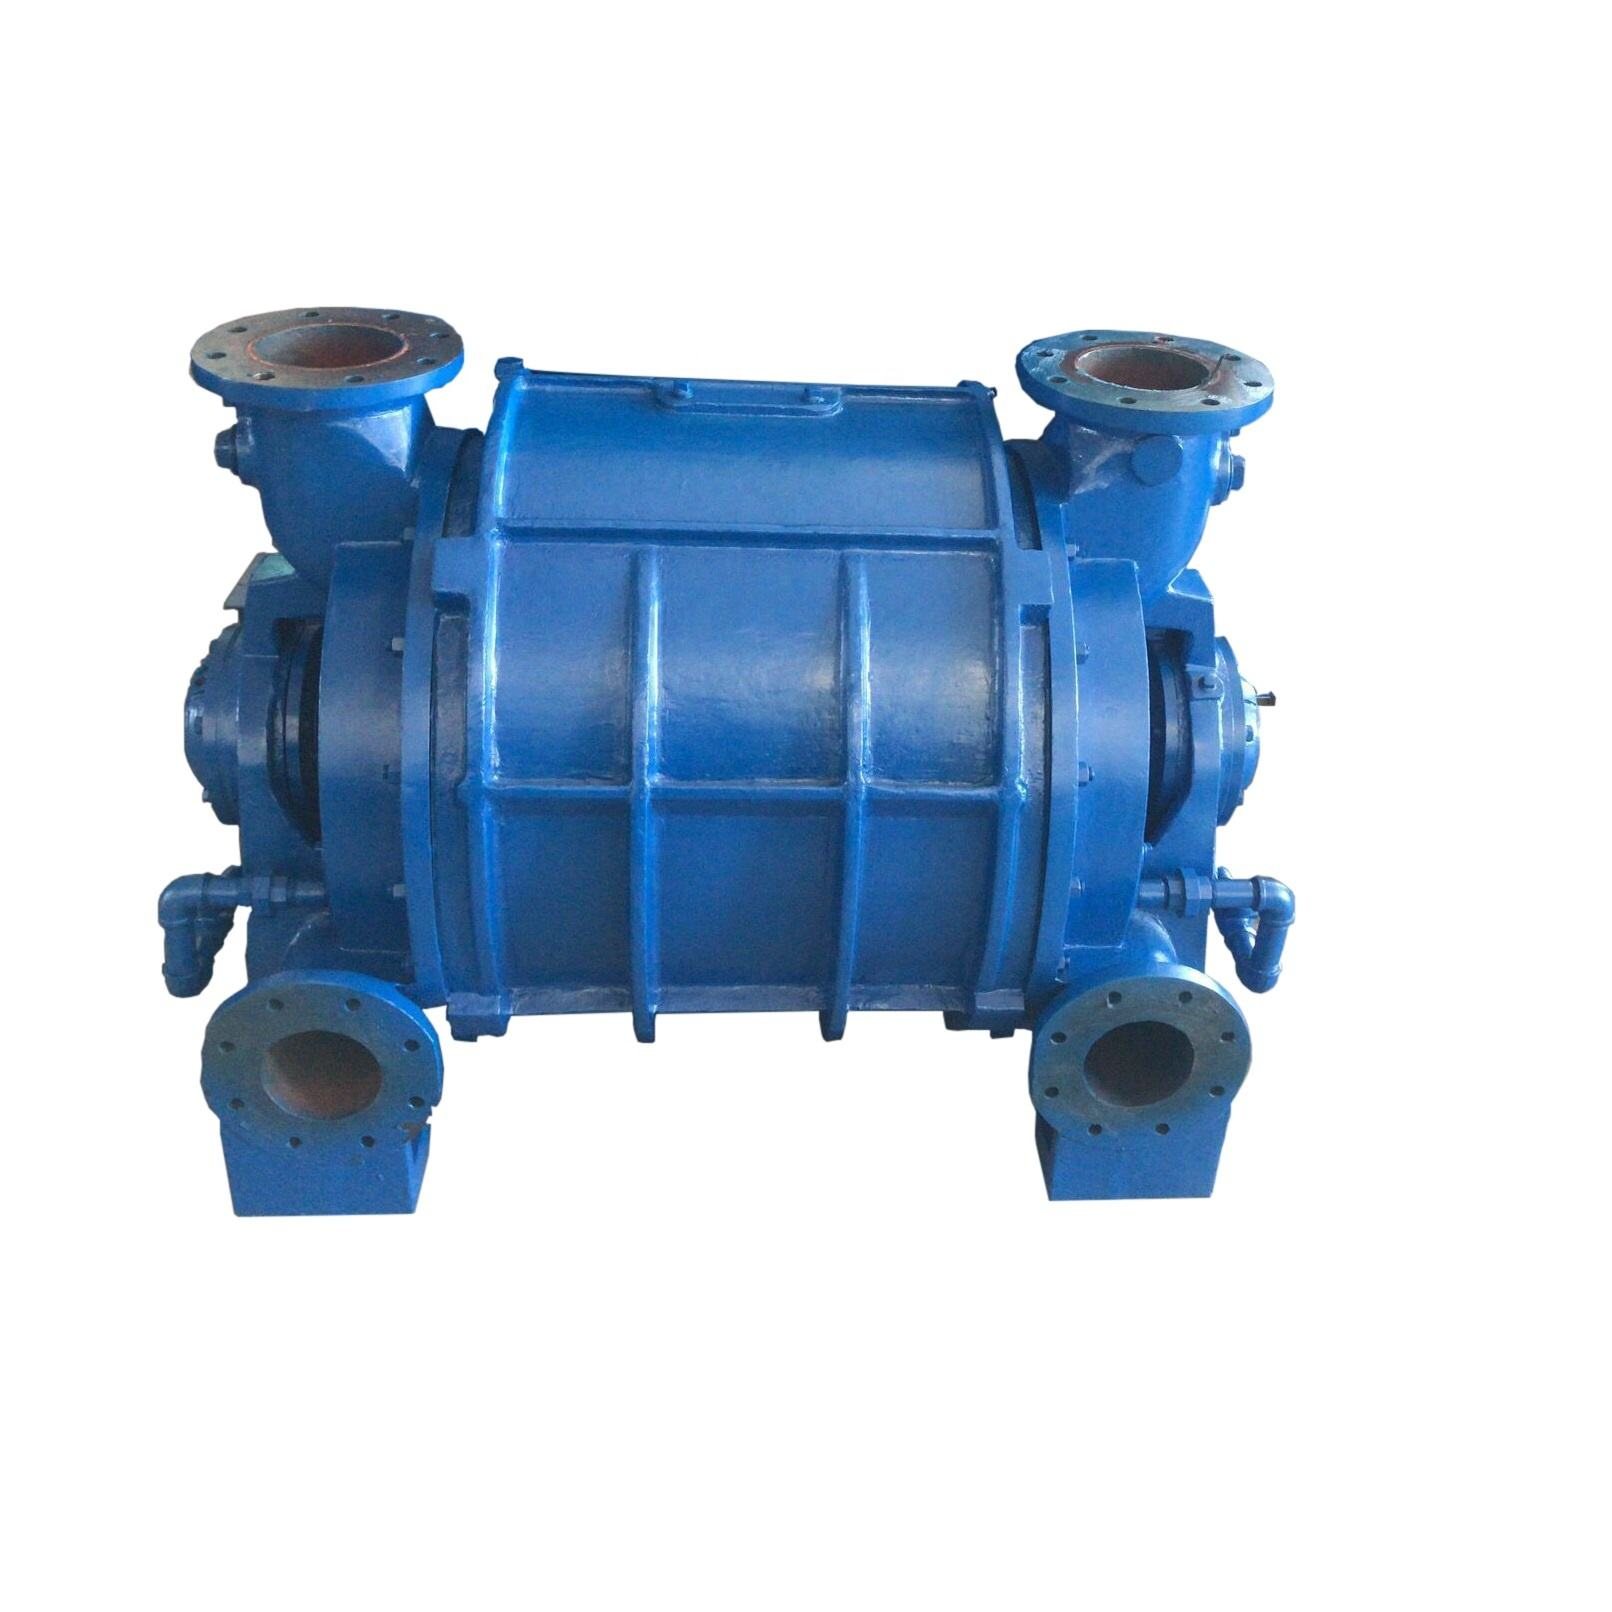 CL-3003 cone structure cast iron SS304 direct drive similar to NASH water ring vacuum pump